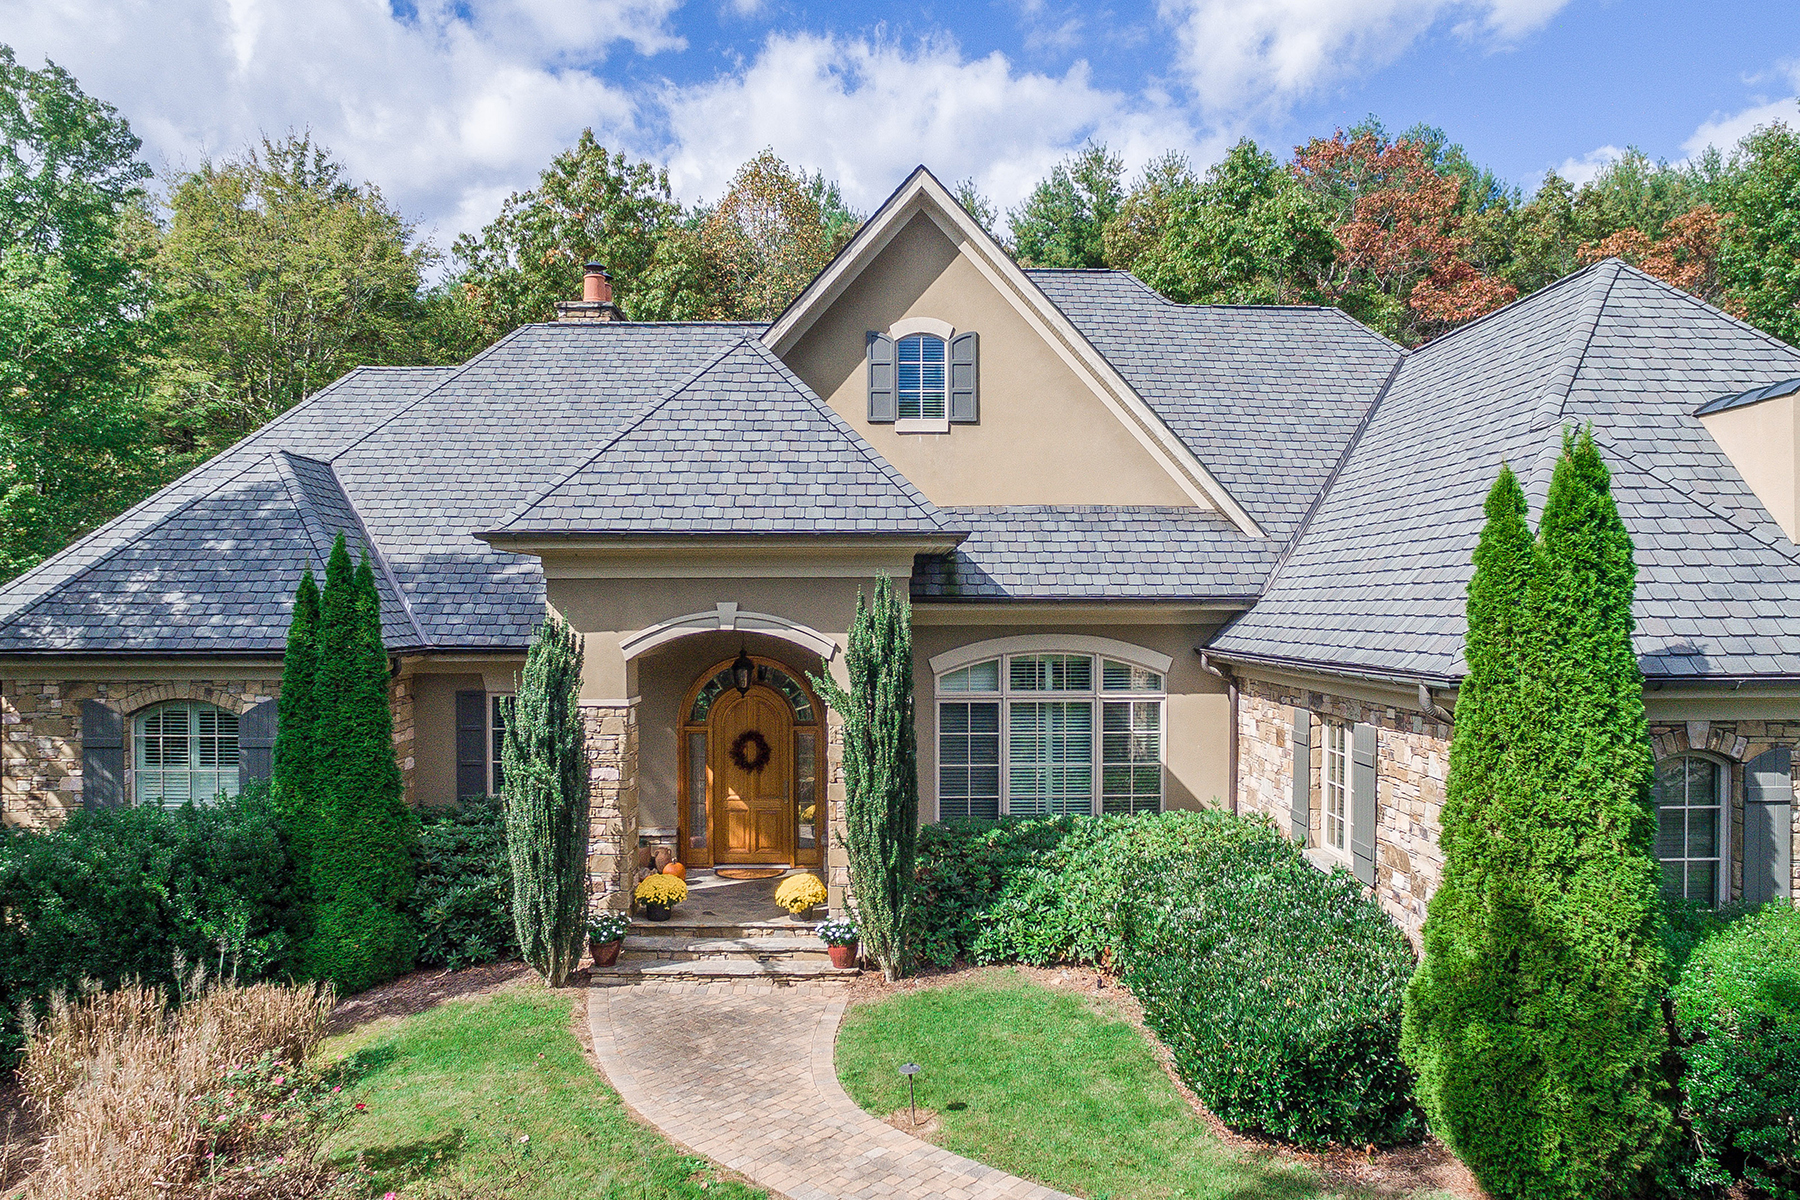 Single Family Home for Sale at ONE-LEVEL LIVING INSIDE THE CLIFFS AT WALNUT COVE 1918 White Tree Trl Lot 202, Arden, North Carolina 28704 United StatesIn/Around: Asheville